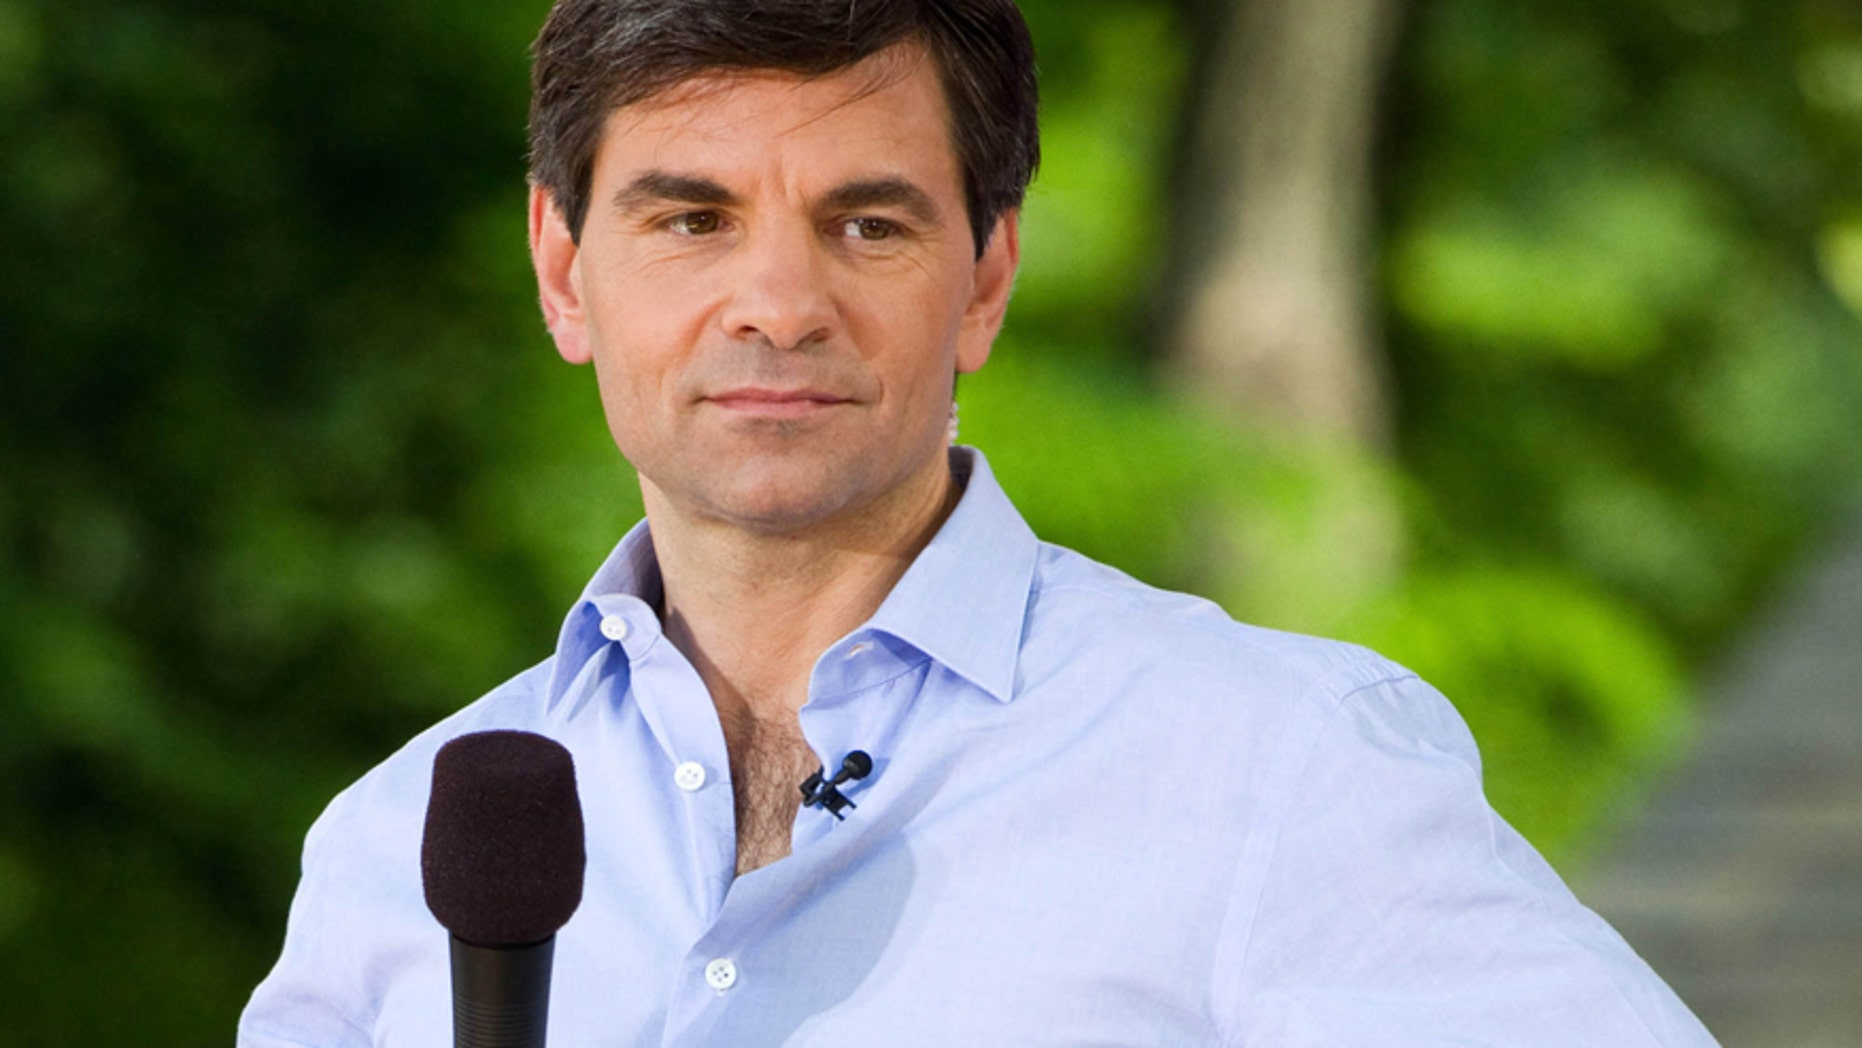 """In this Friday, May 28, 2010 file photo, George Stephanopoulos appears on ABC's """"Good Morning America"""" show in New York."""